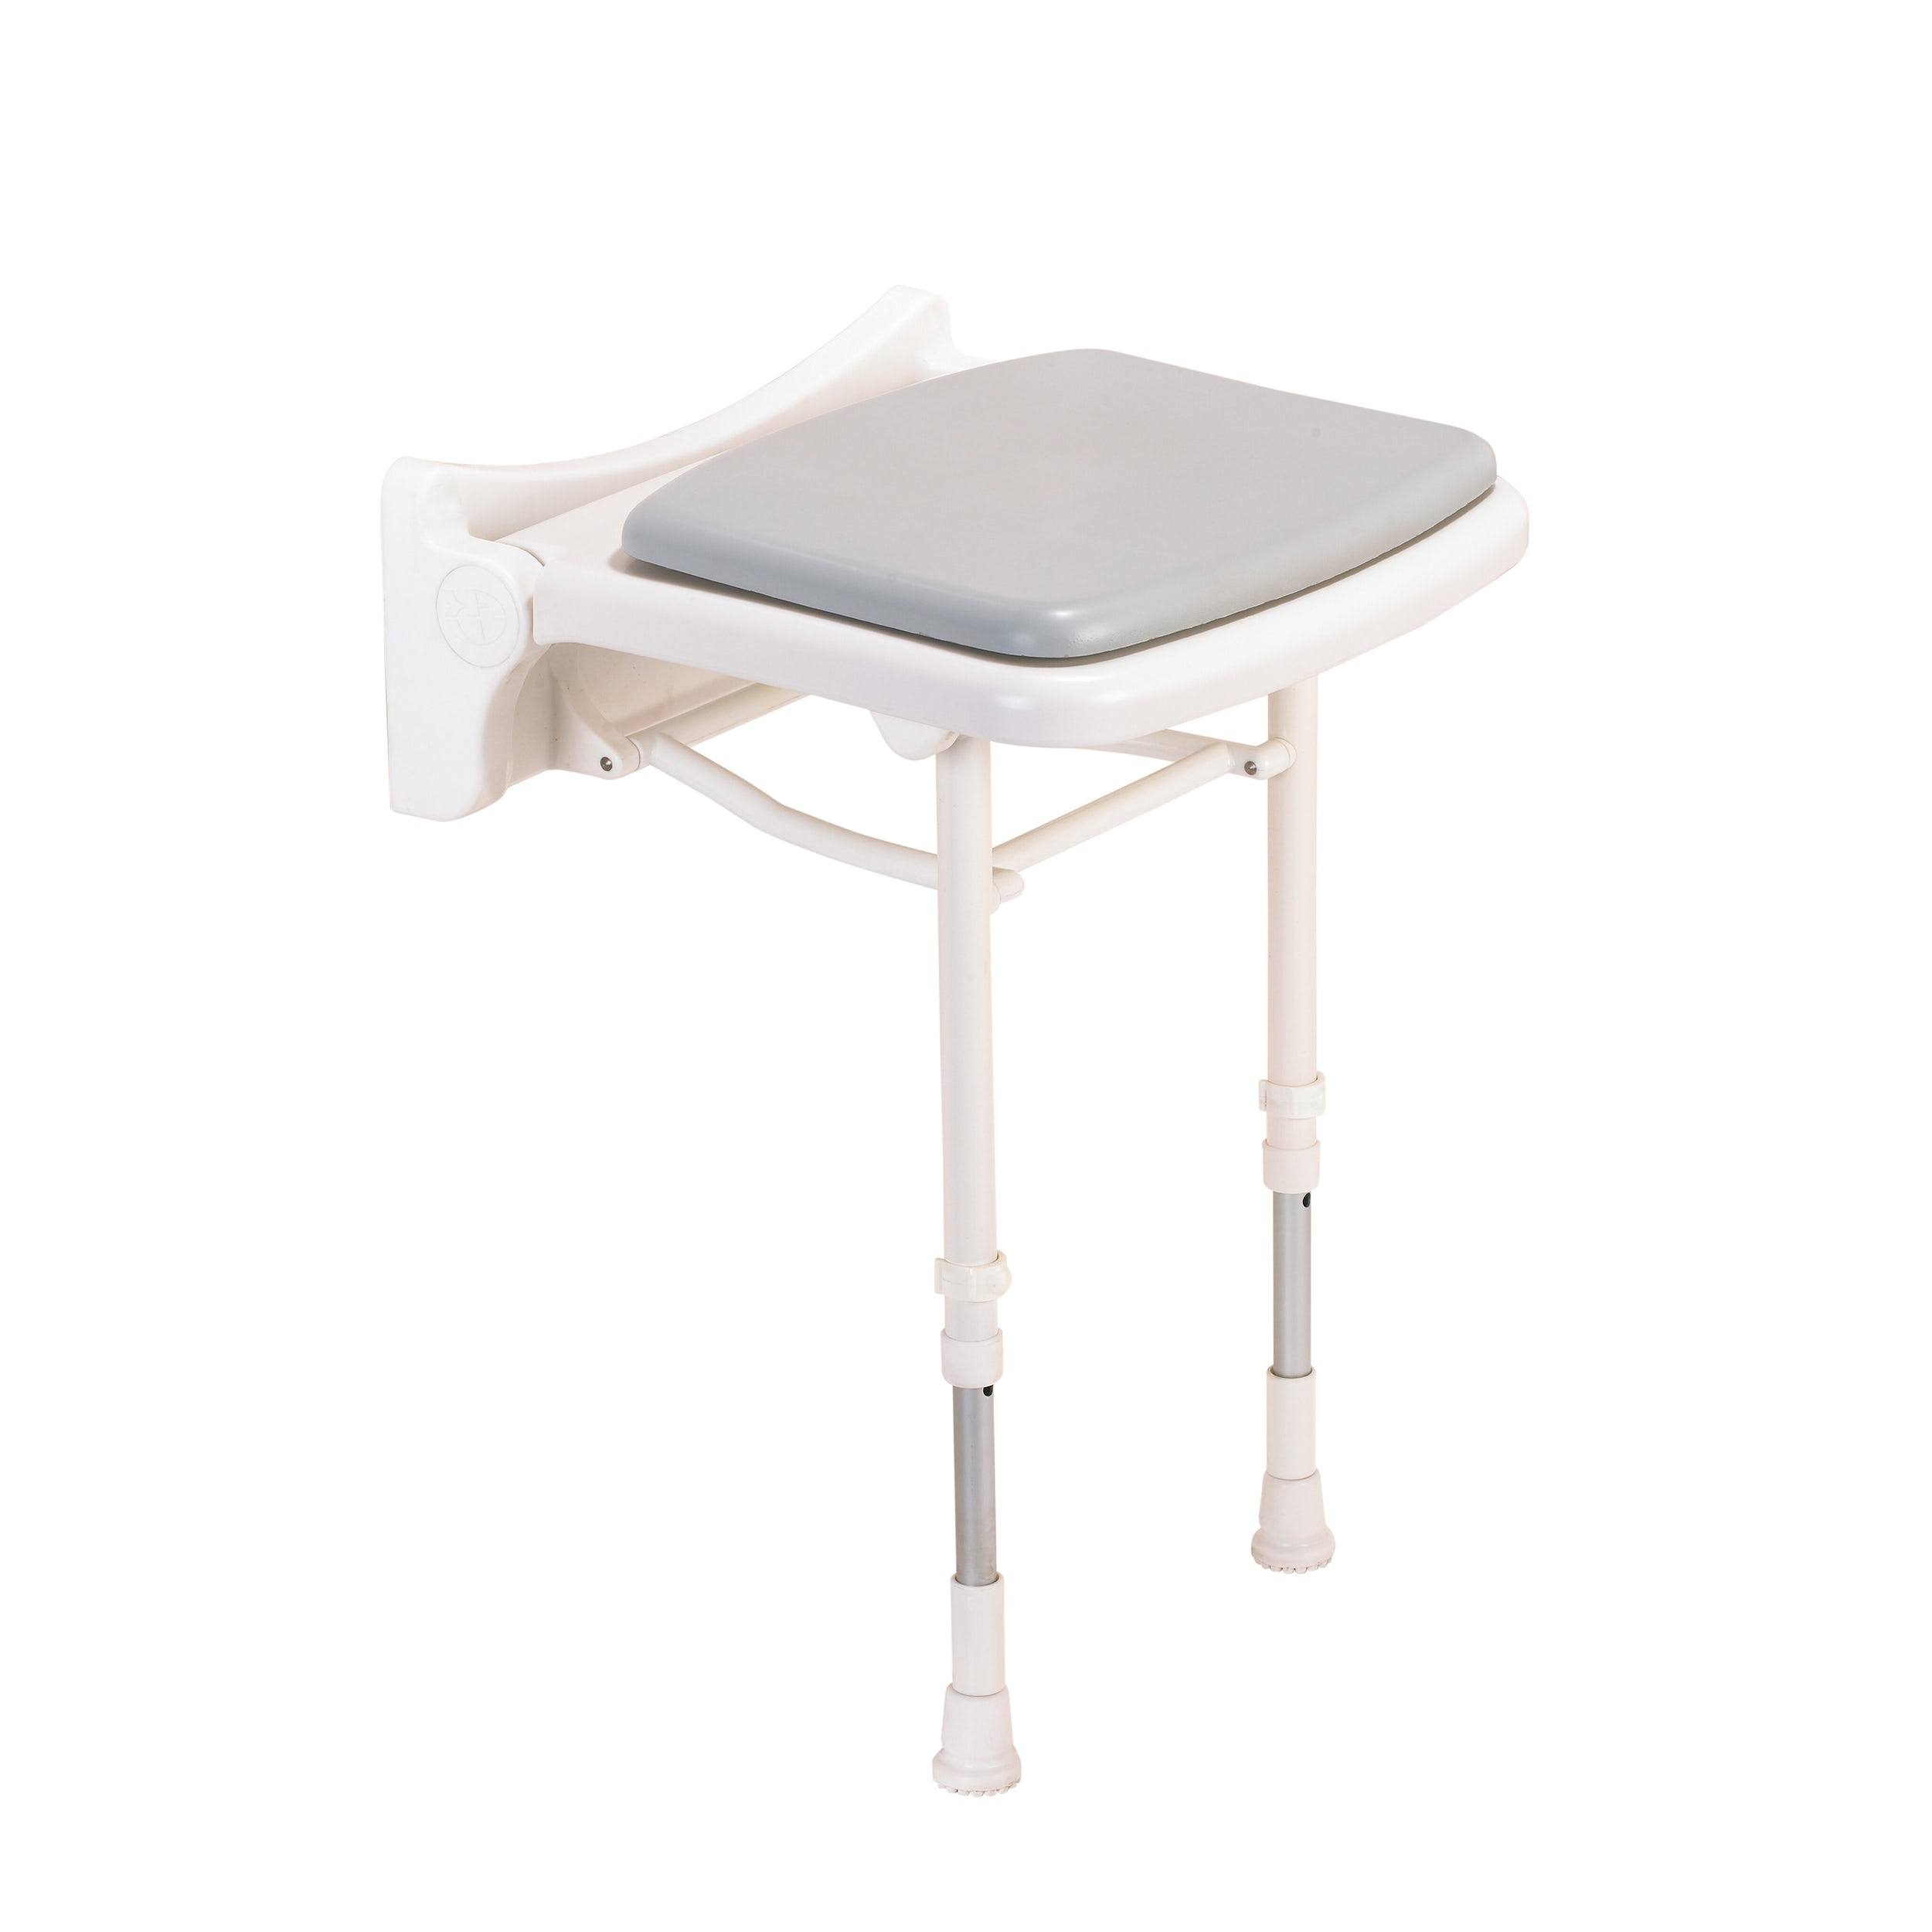 AKW 2000 series pact folding shower seat with grey pad